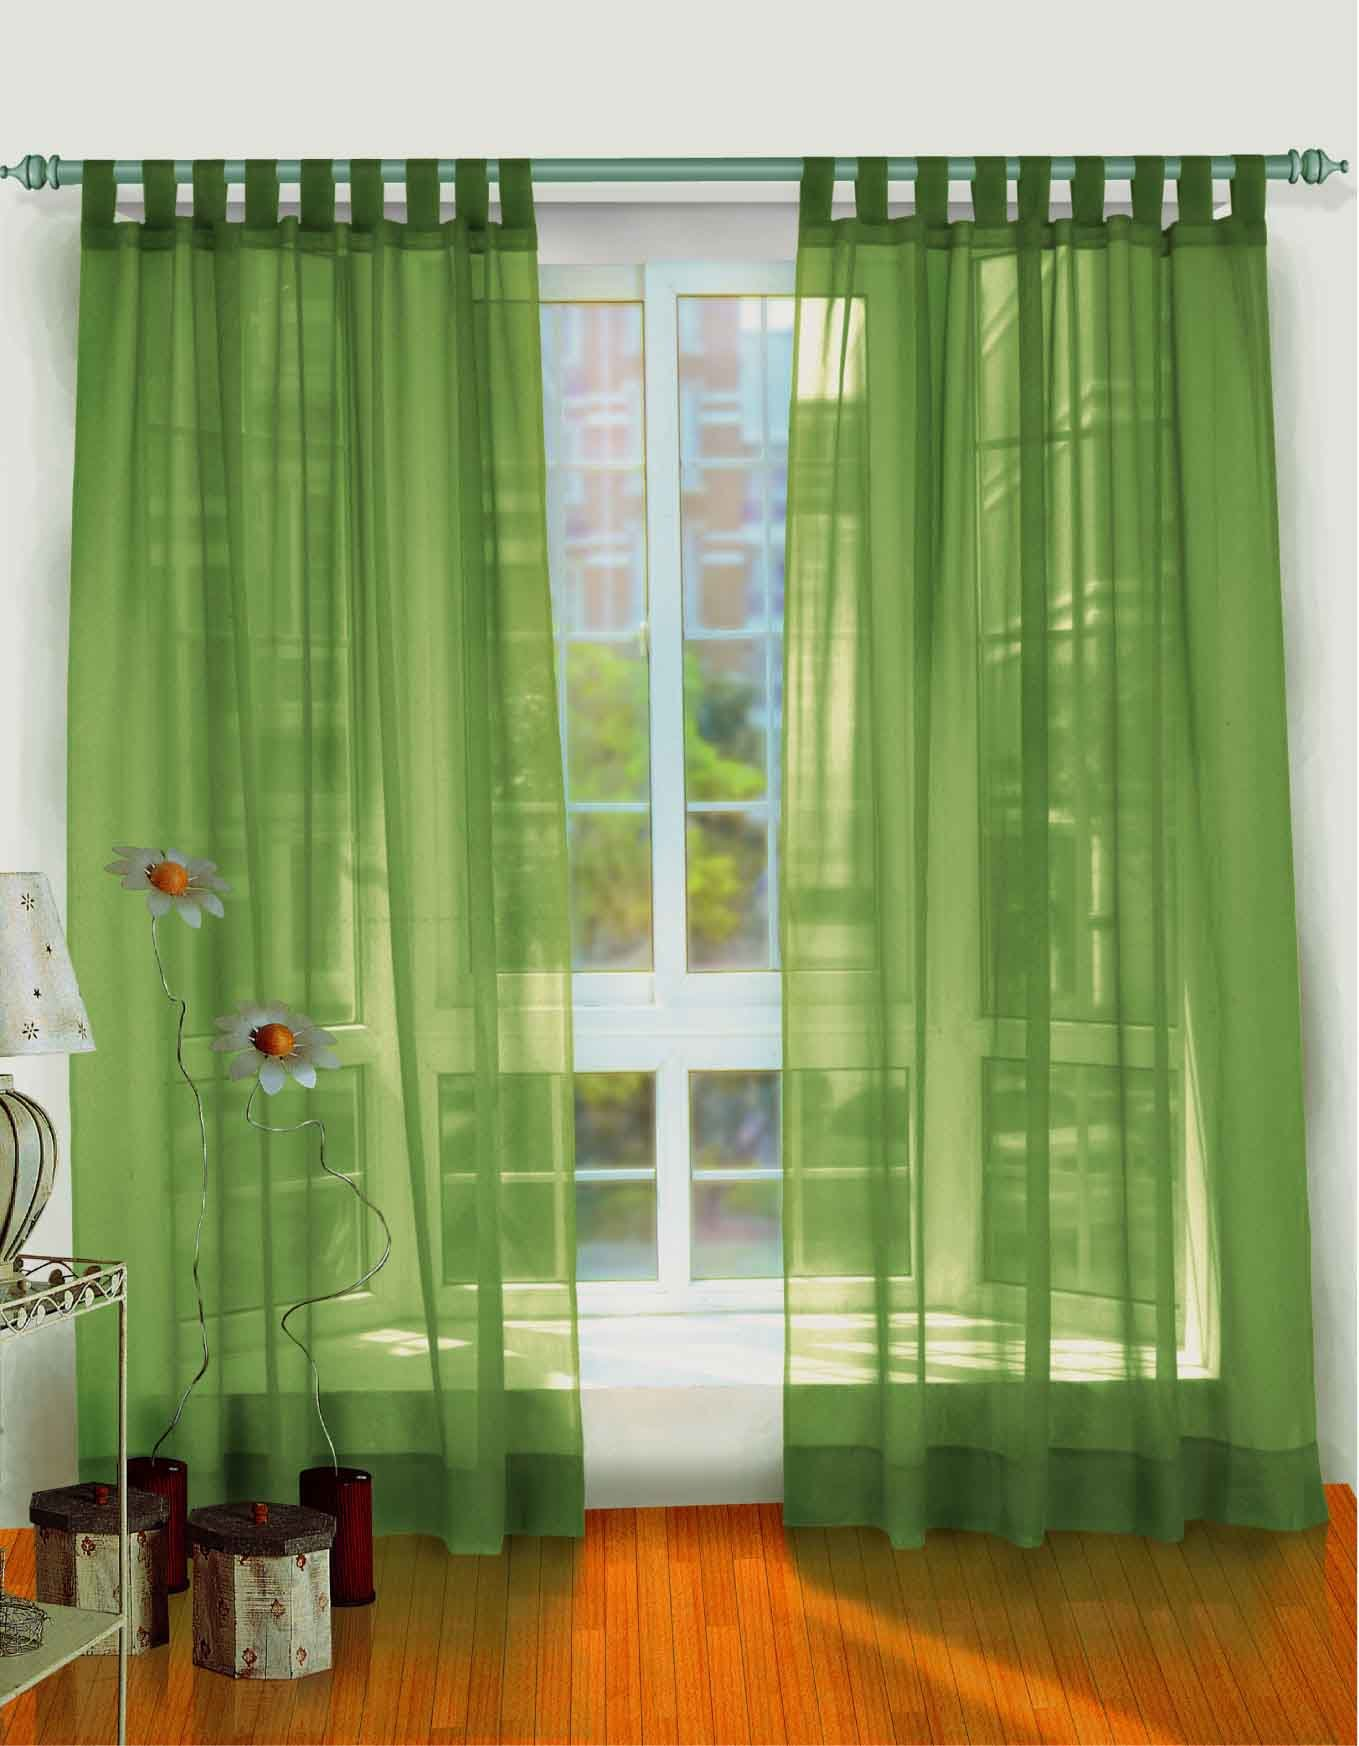 New curtain designs ideas | Window Shades Curtains